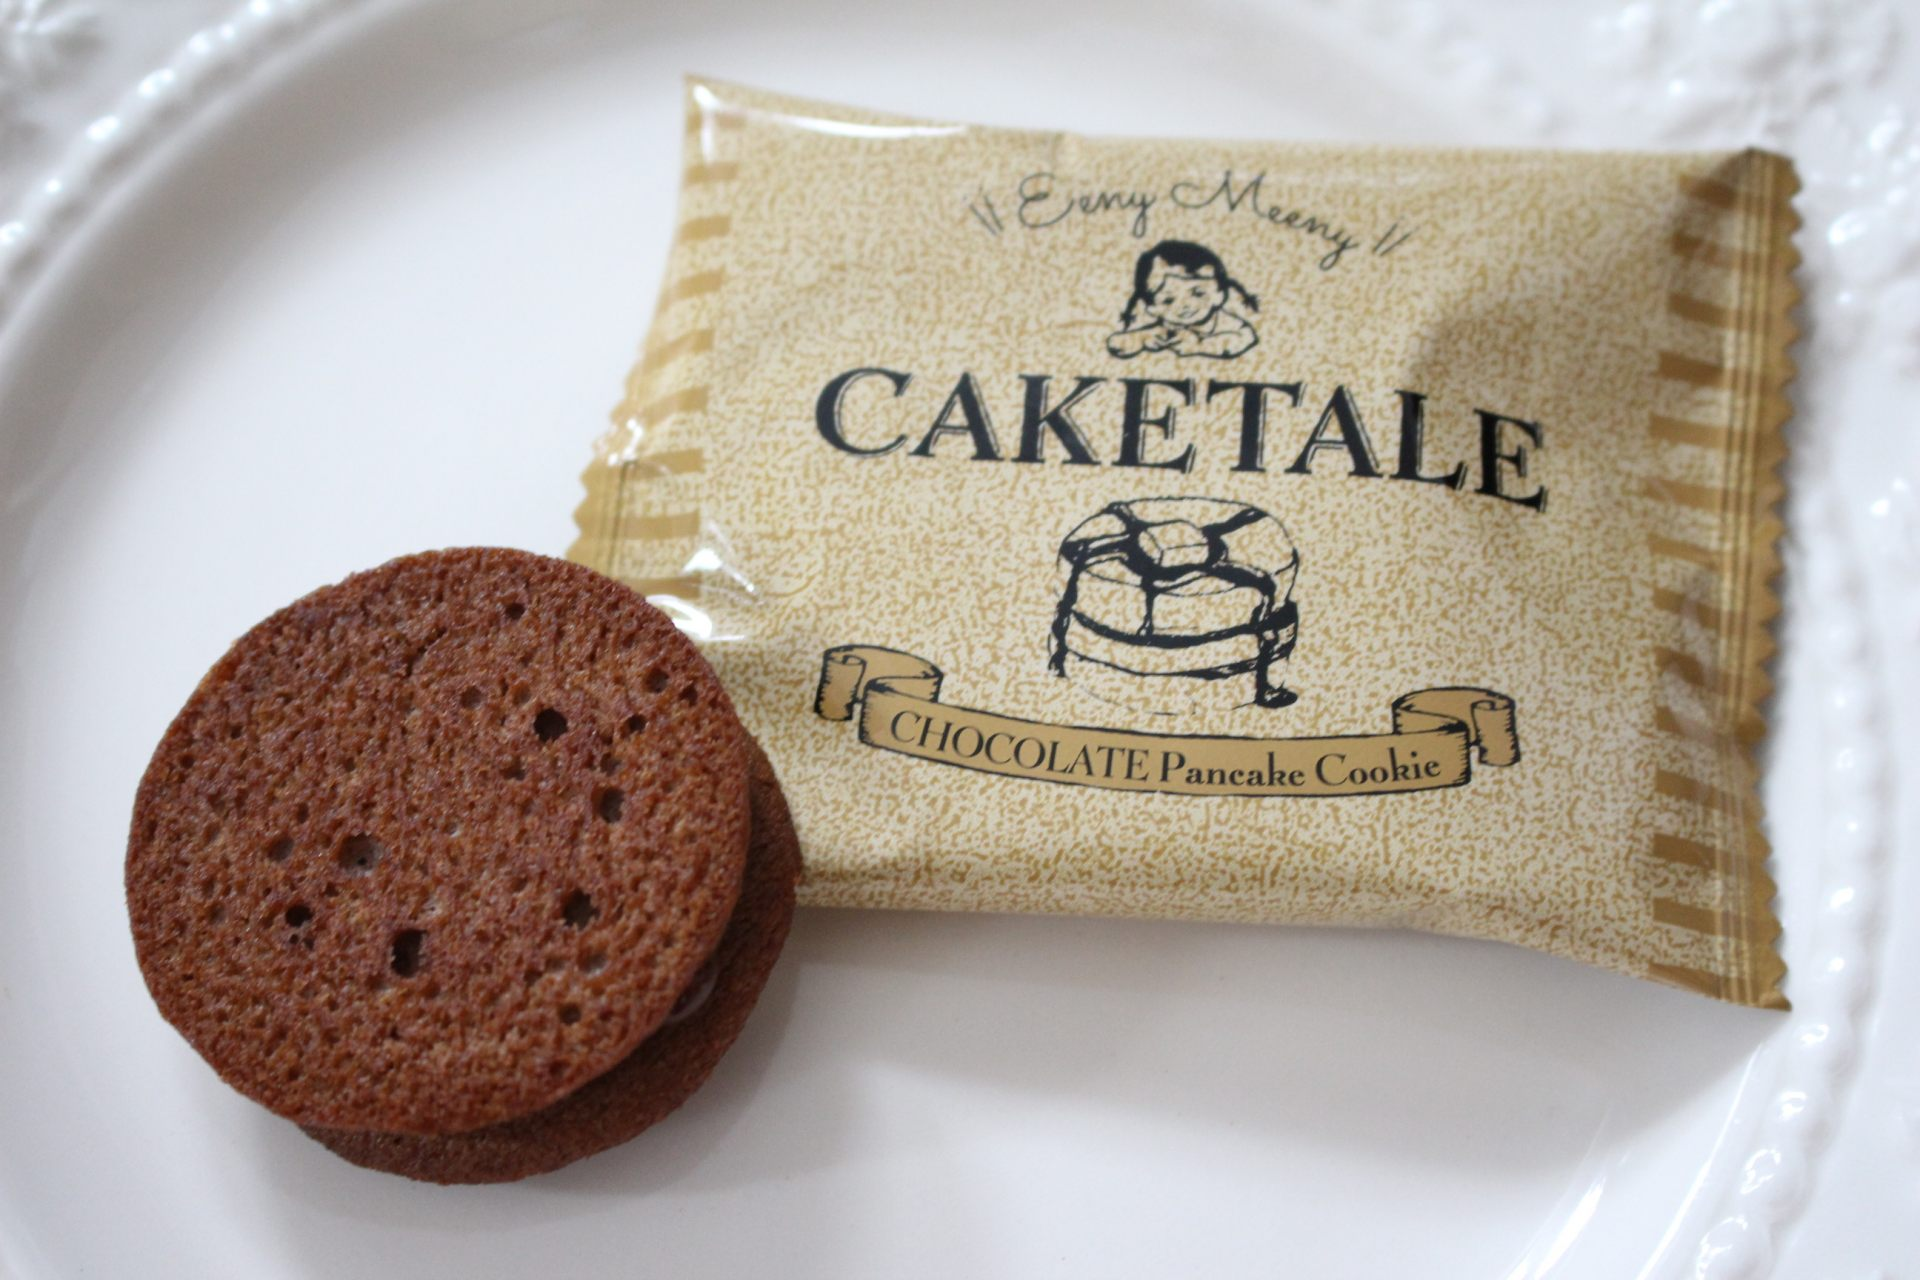 The Chocolate Cookie